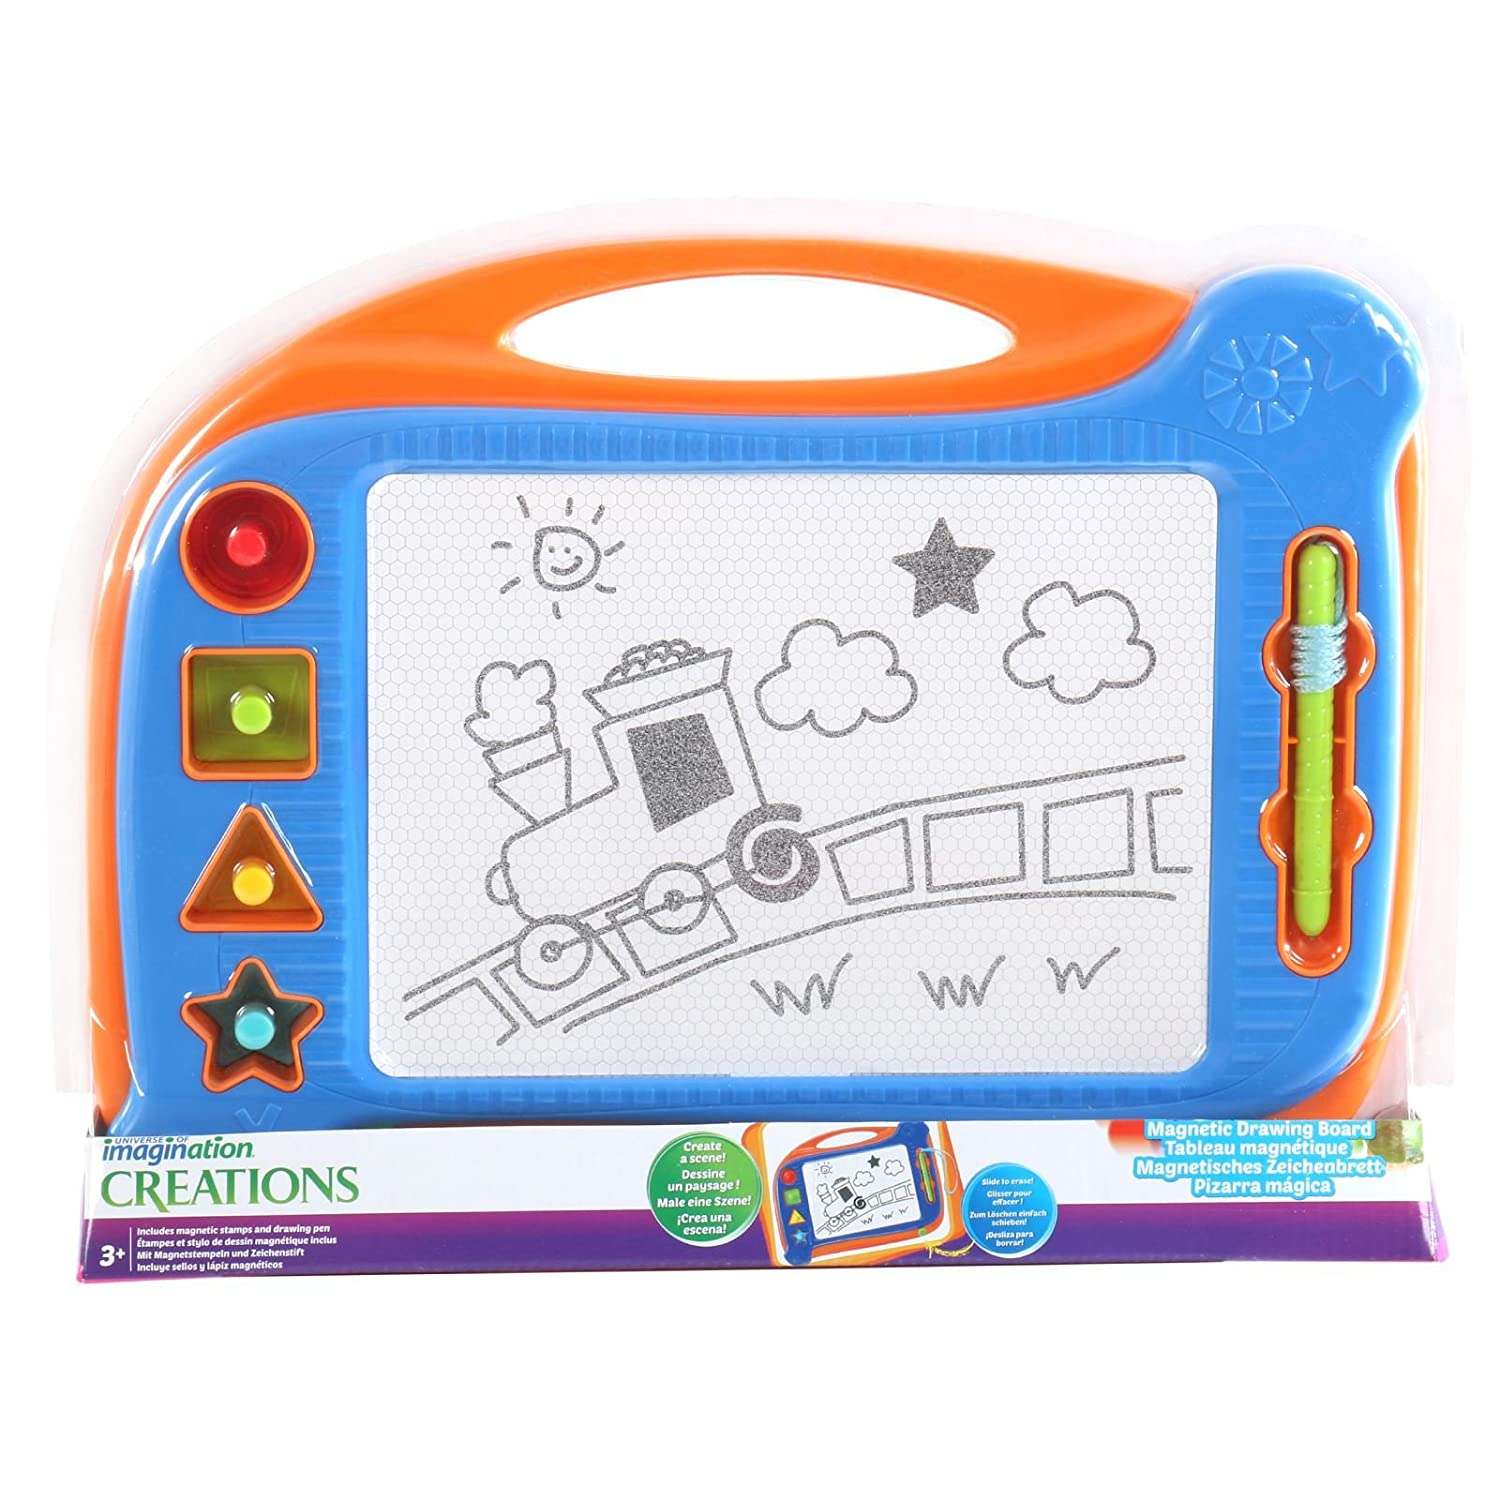 Amazon.com: Imaginarium Magnetic Drawing Board - Blue & Orange: Toys ...